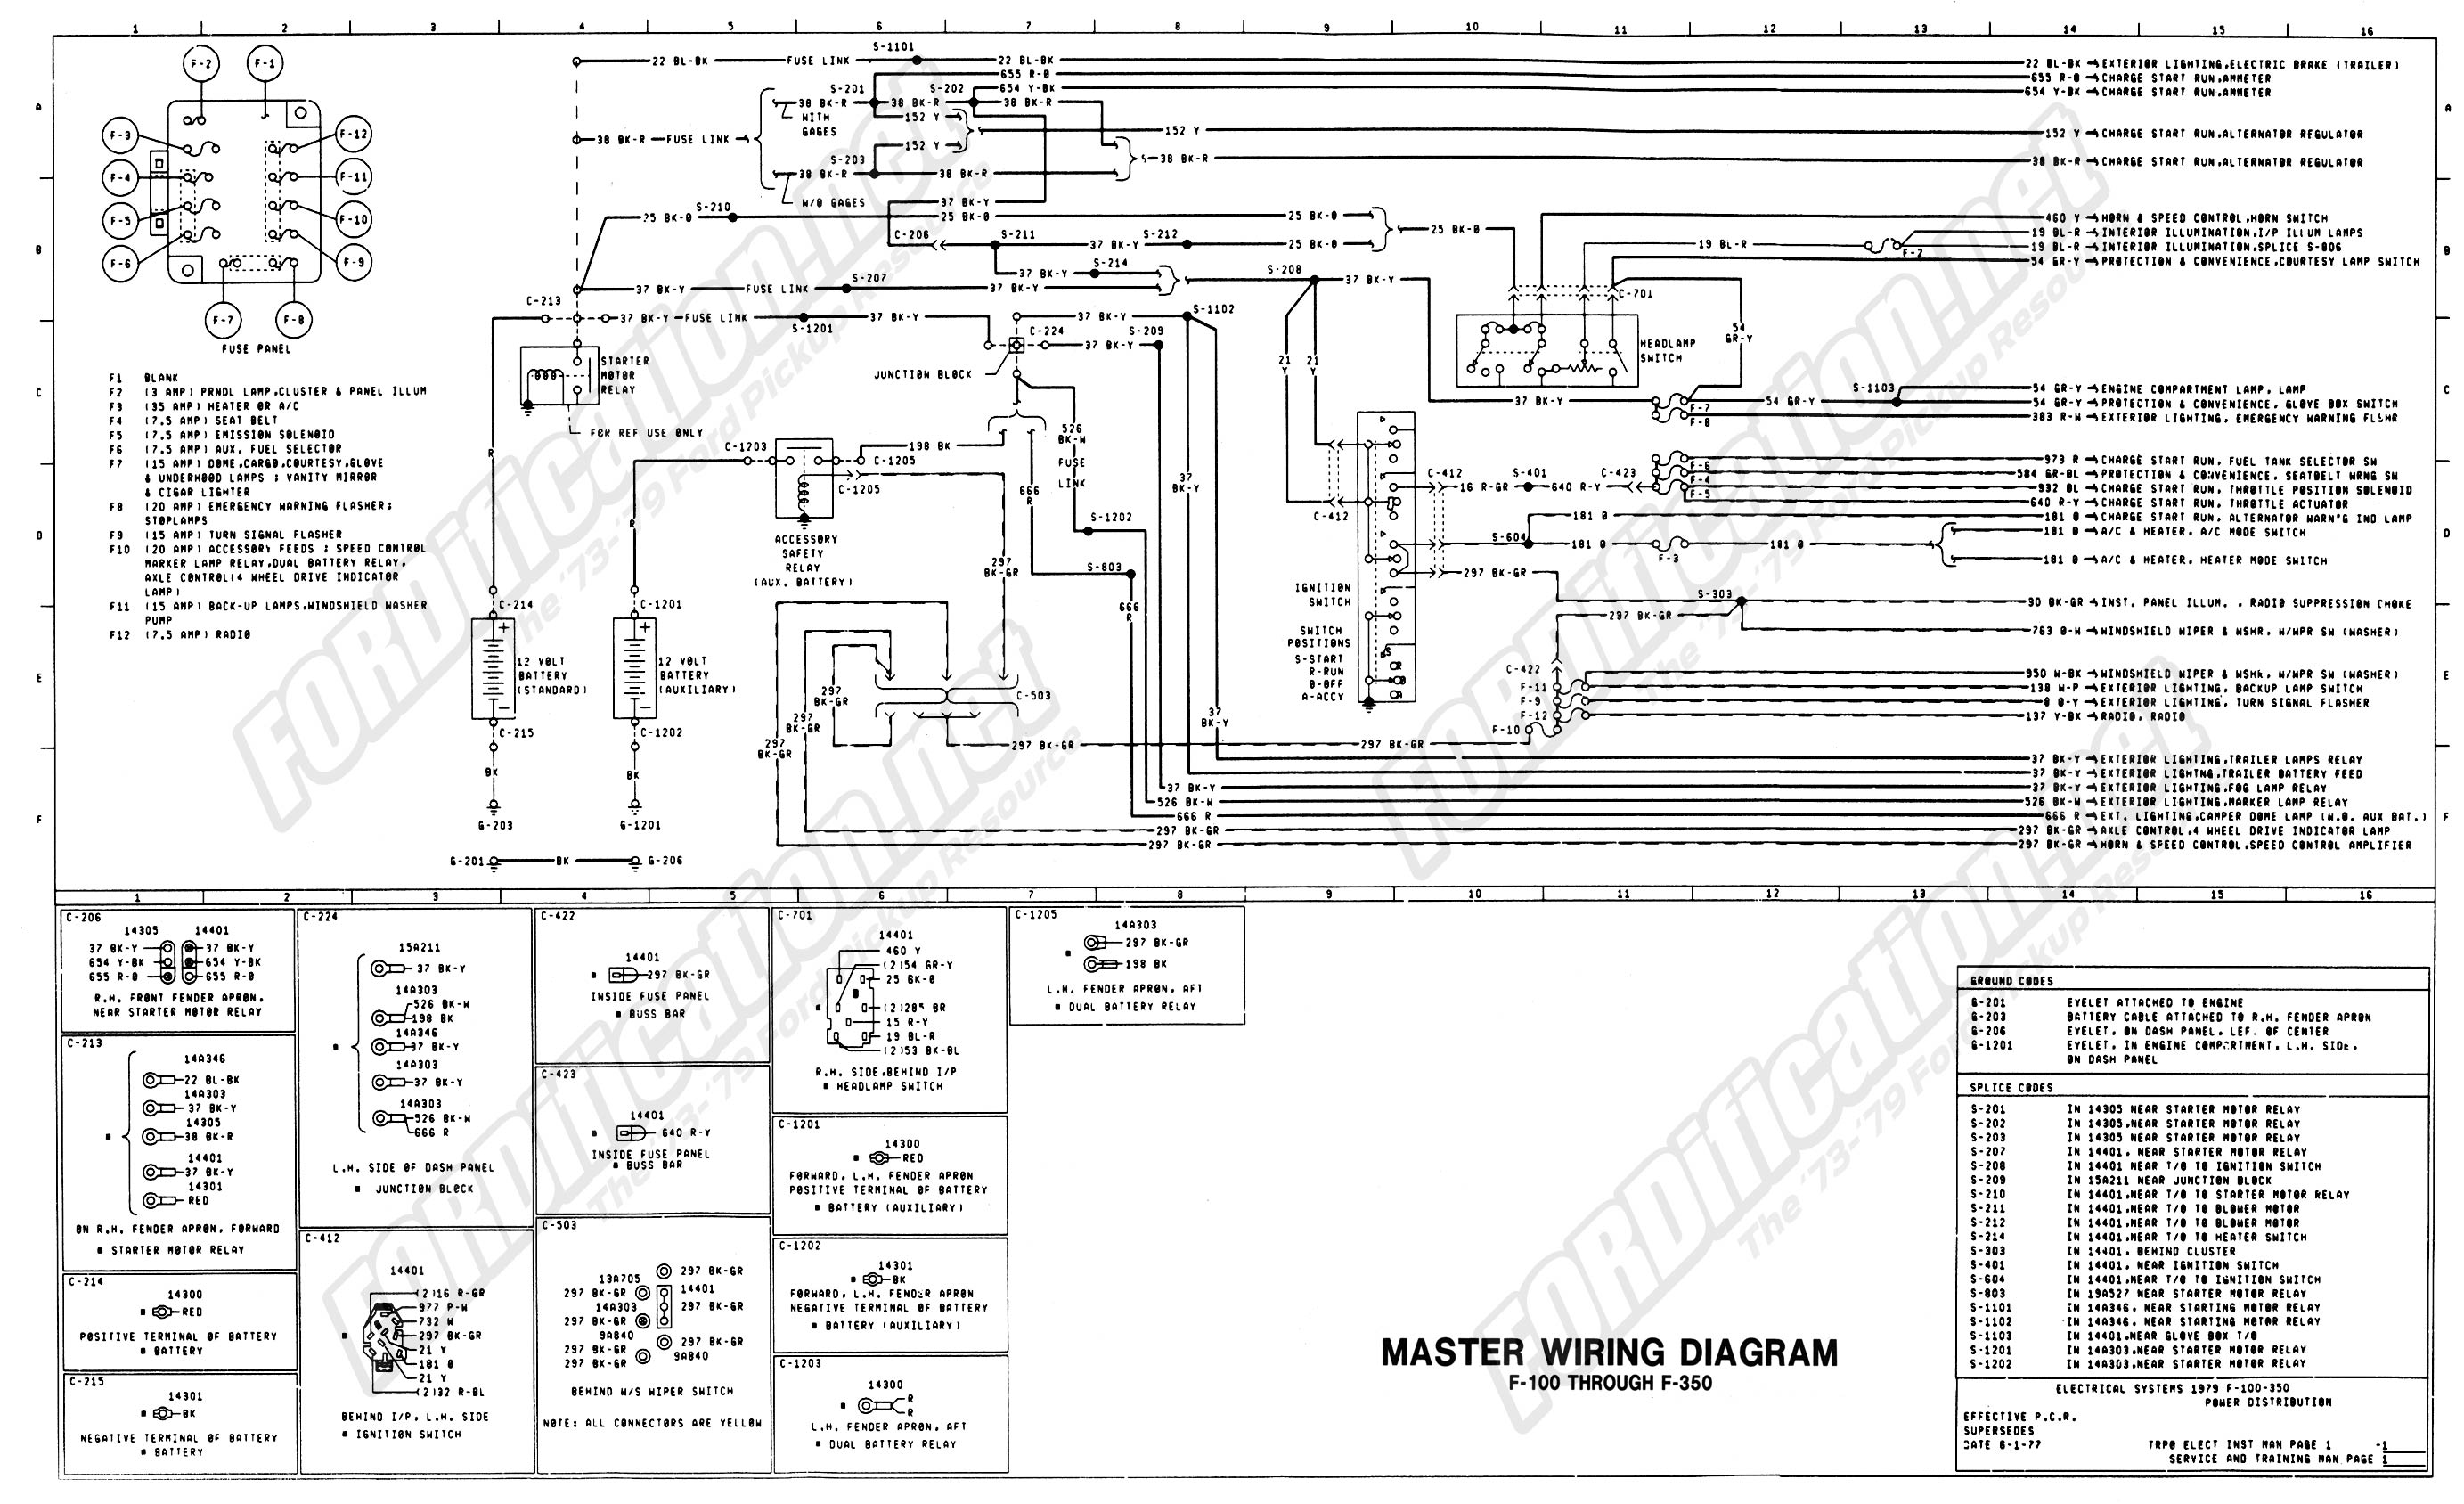 wiring_79master_1of9 1973 1979 ford truck wiring diagrams & schematics fordification net ford ignition switch diagram at panicattacktreatment.co